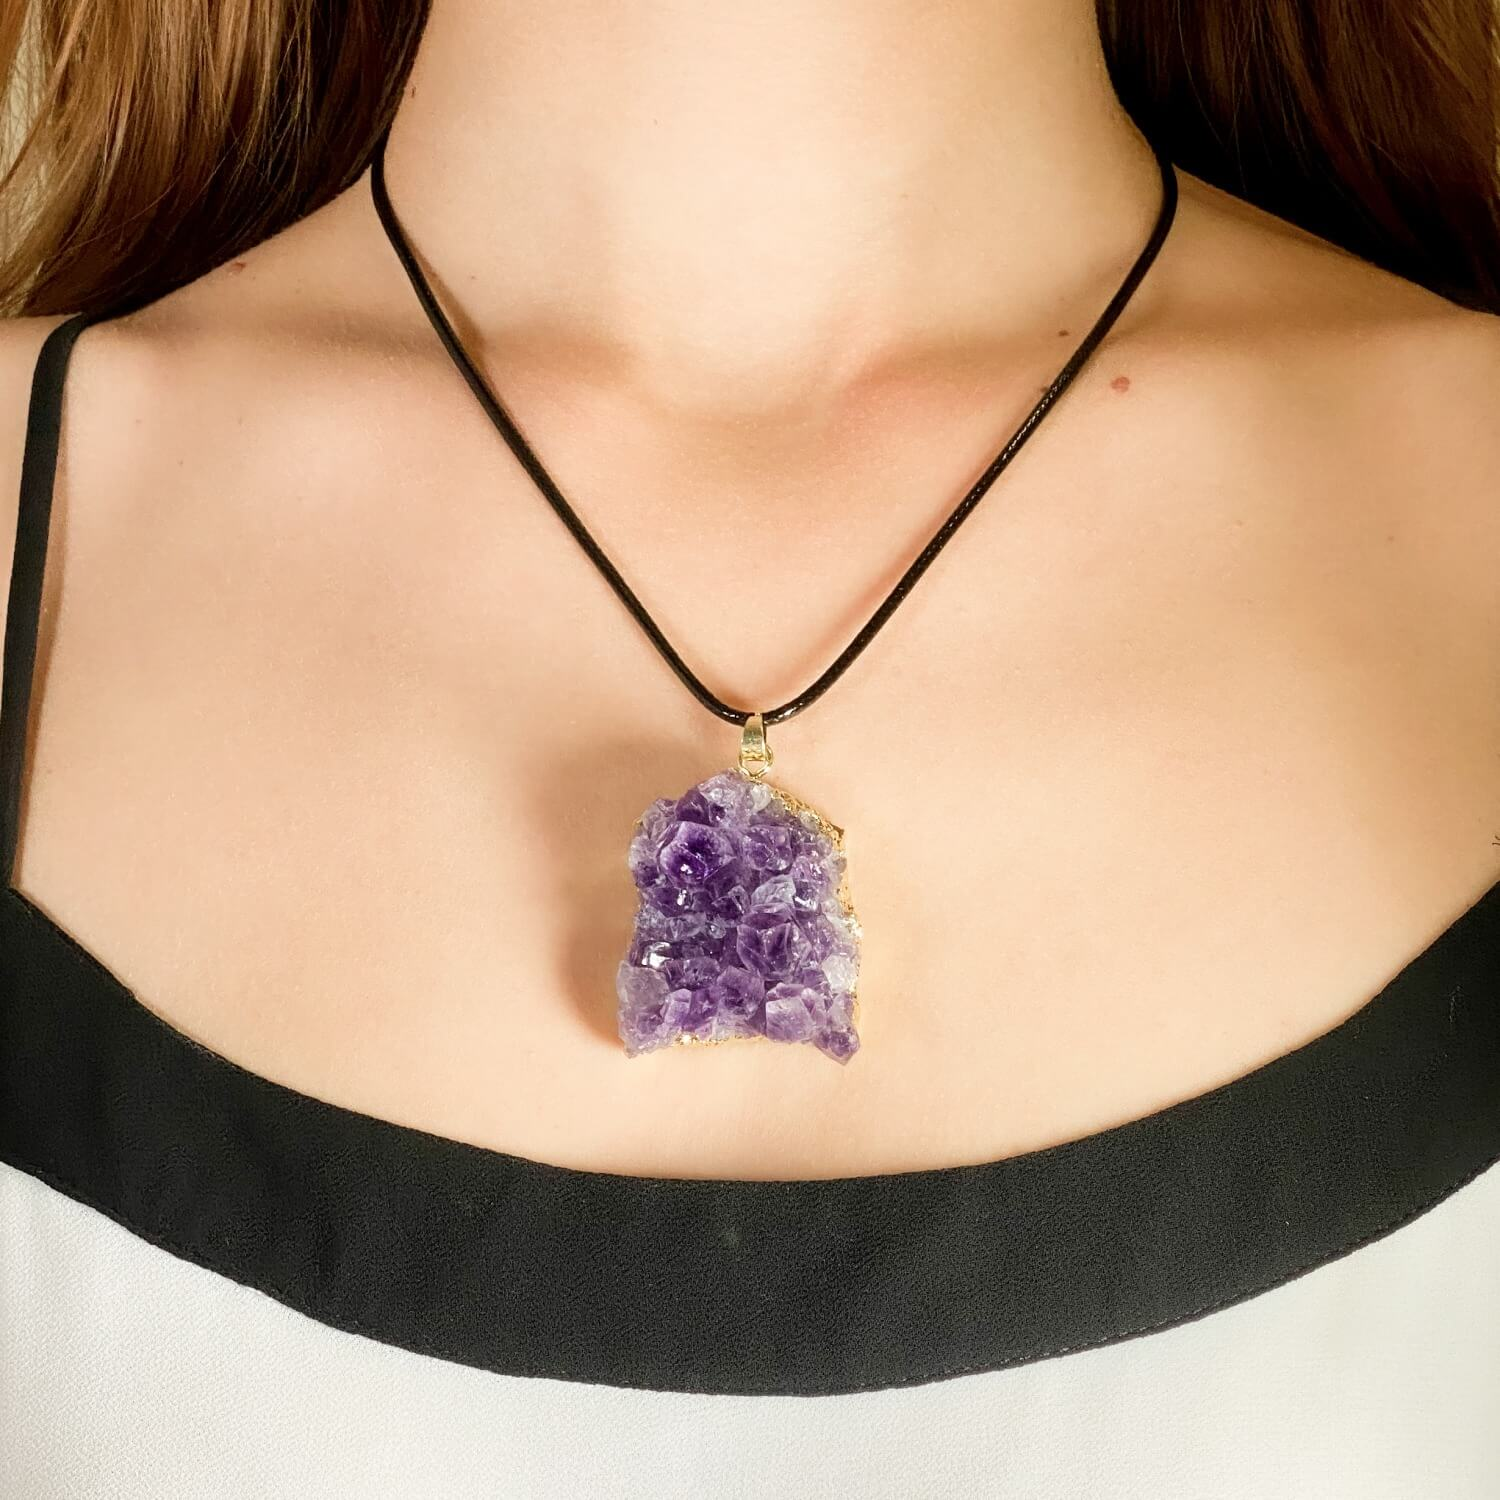 raw amethyst necklace pendant jewelry crystal 1